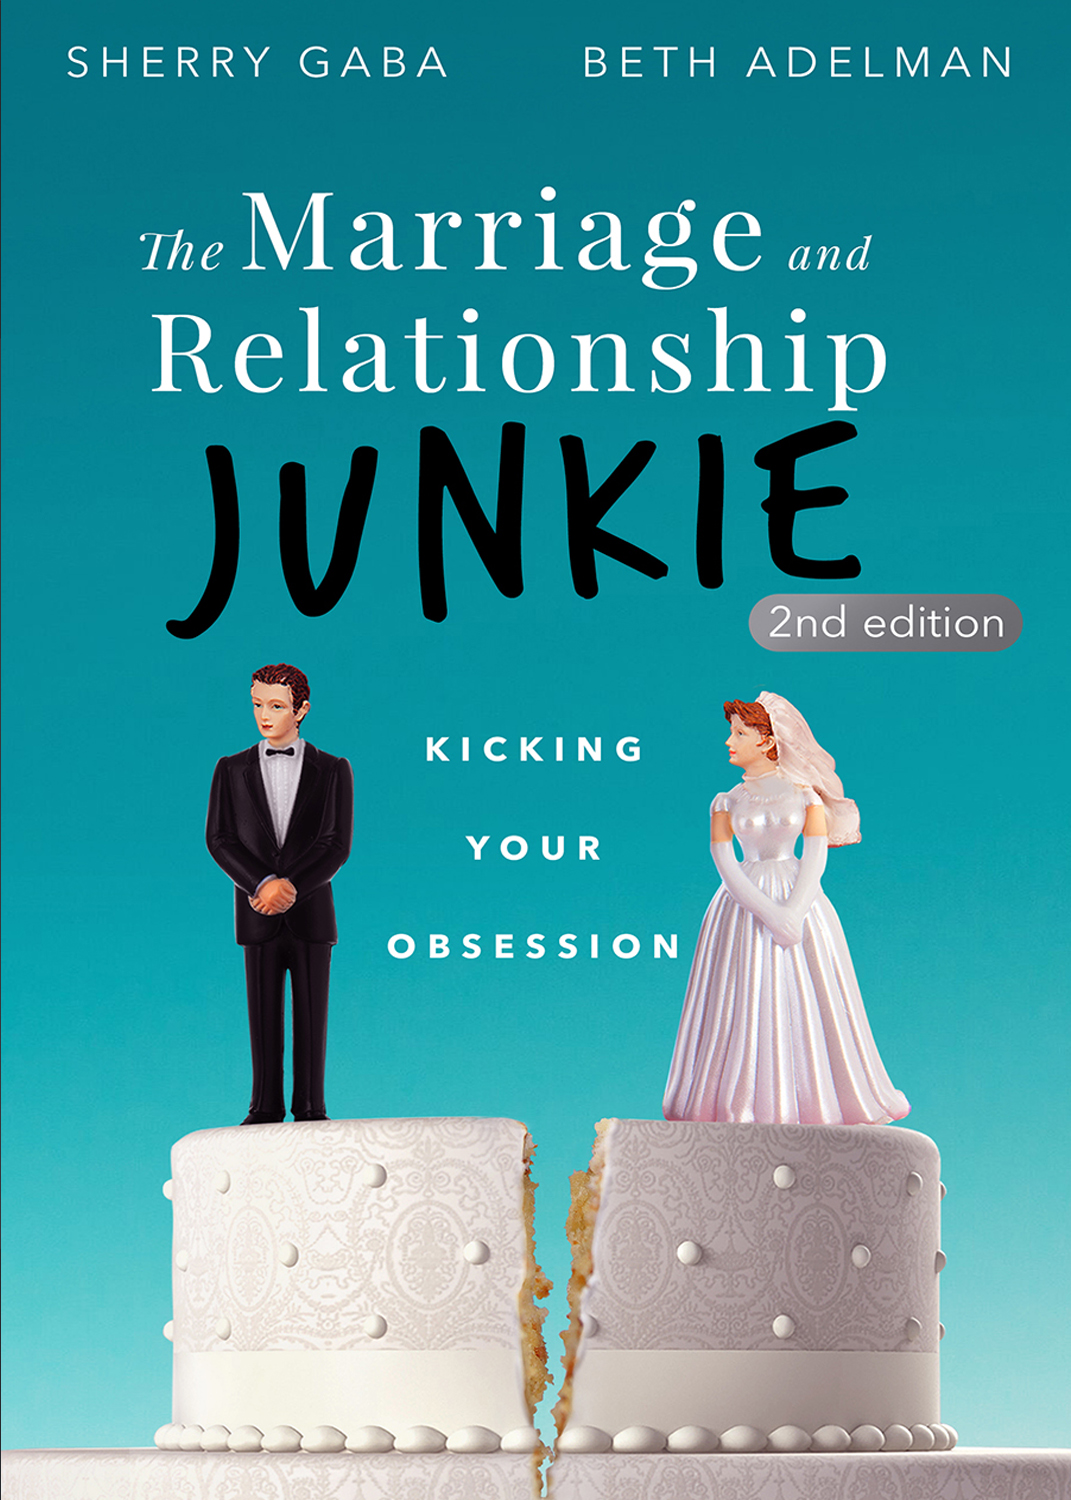 The Marriage and Relationship Junkie